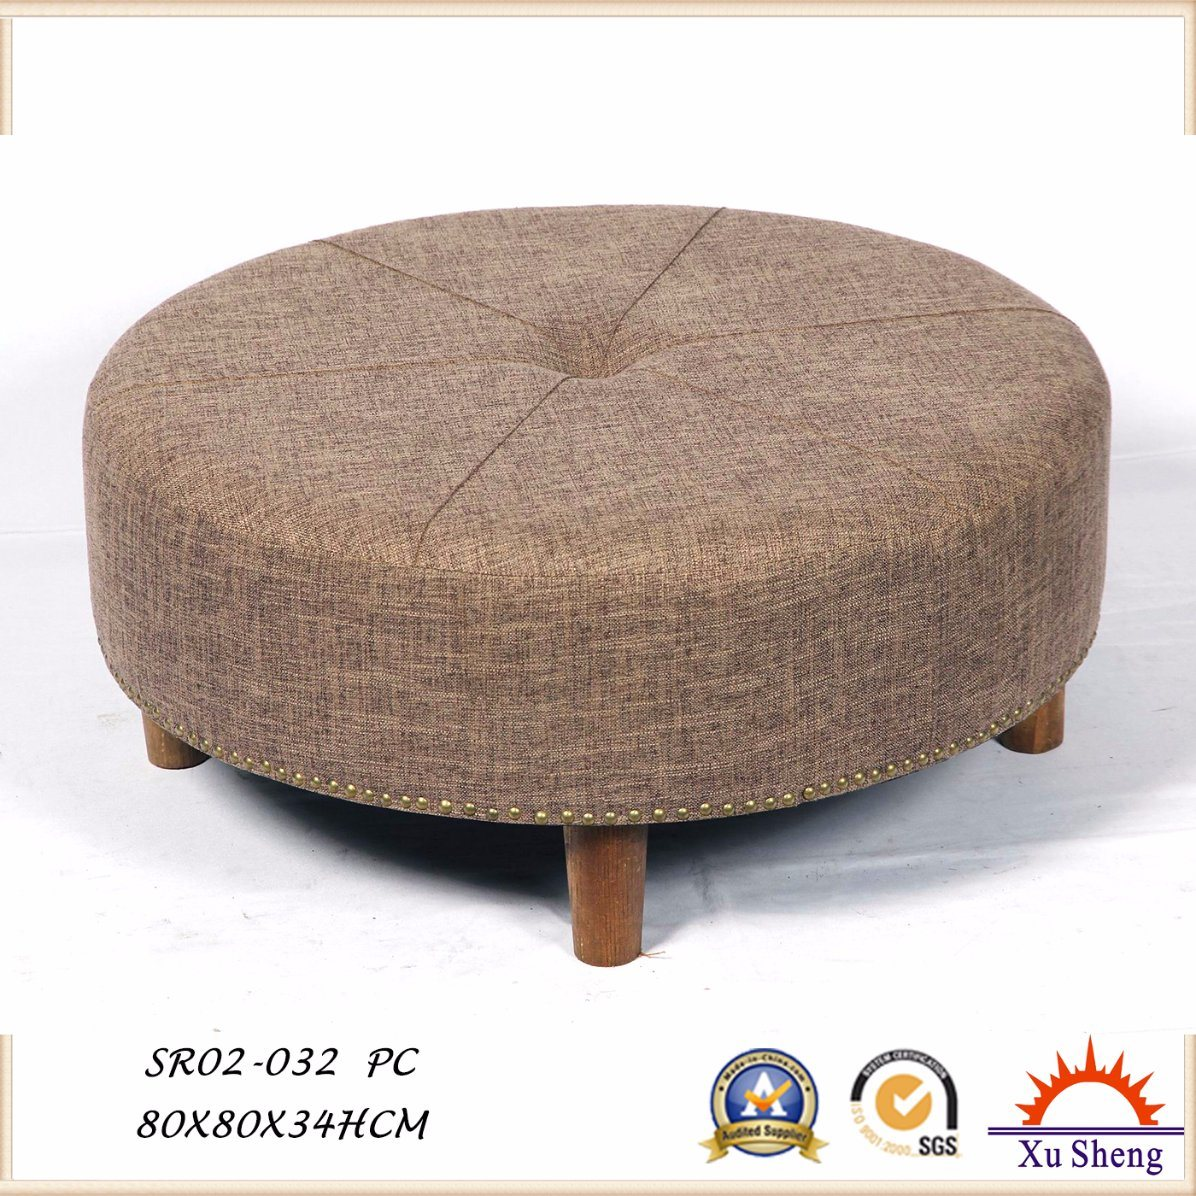 Button Tufted Round Ottoman, Coffee Table with Nailhead Trim for Living Room